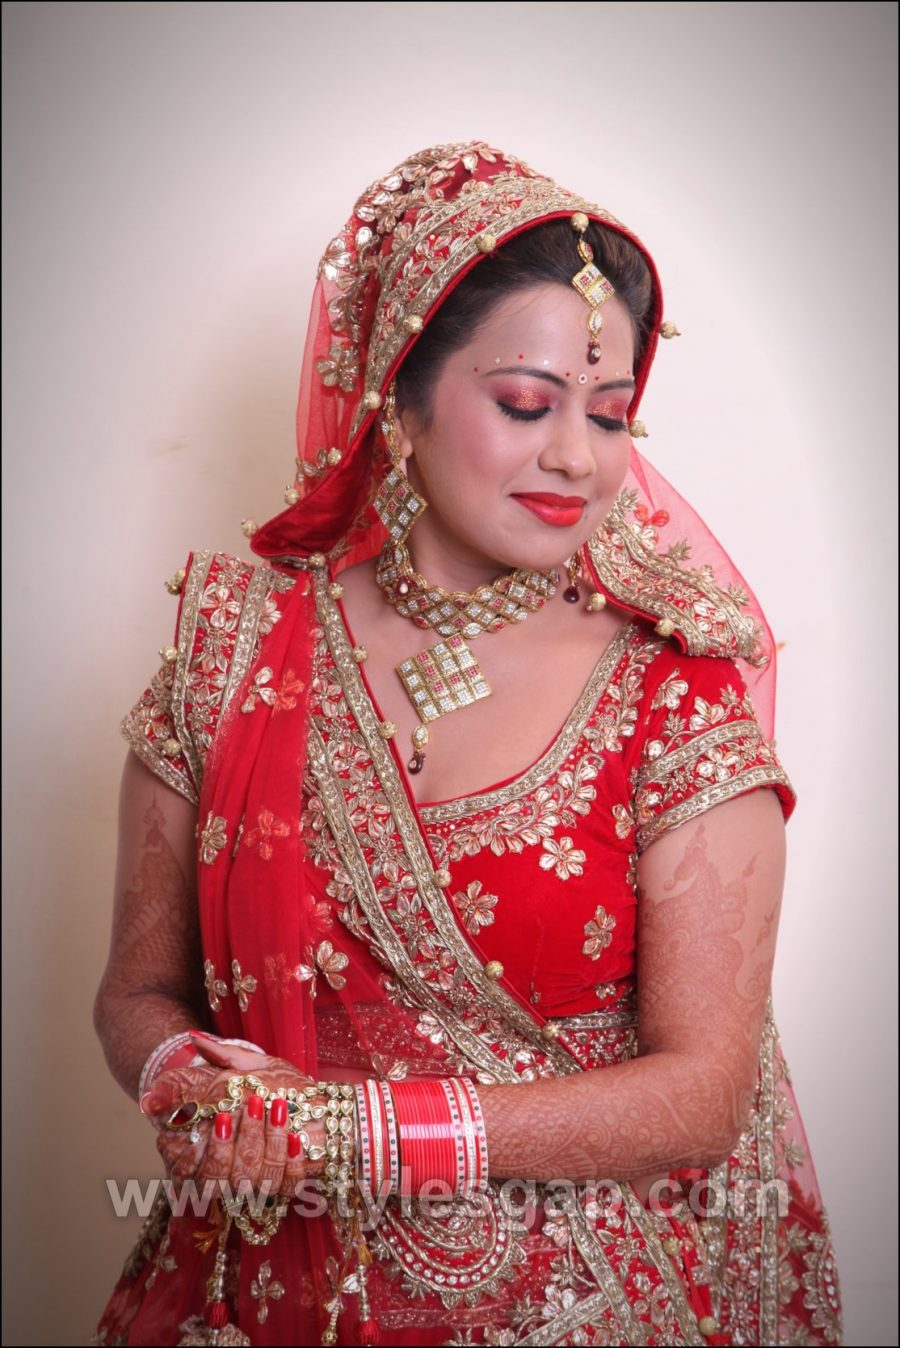 But If We Take A Look At Royal Dressing Style Of Ladies Which Is Known As Rajasthani Poshak Then It Indeed Heart Throbbing Mirrors The Culture And